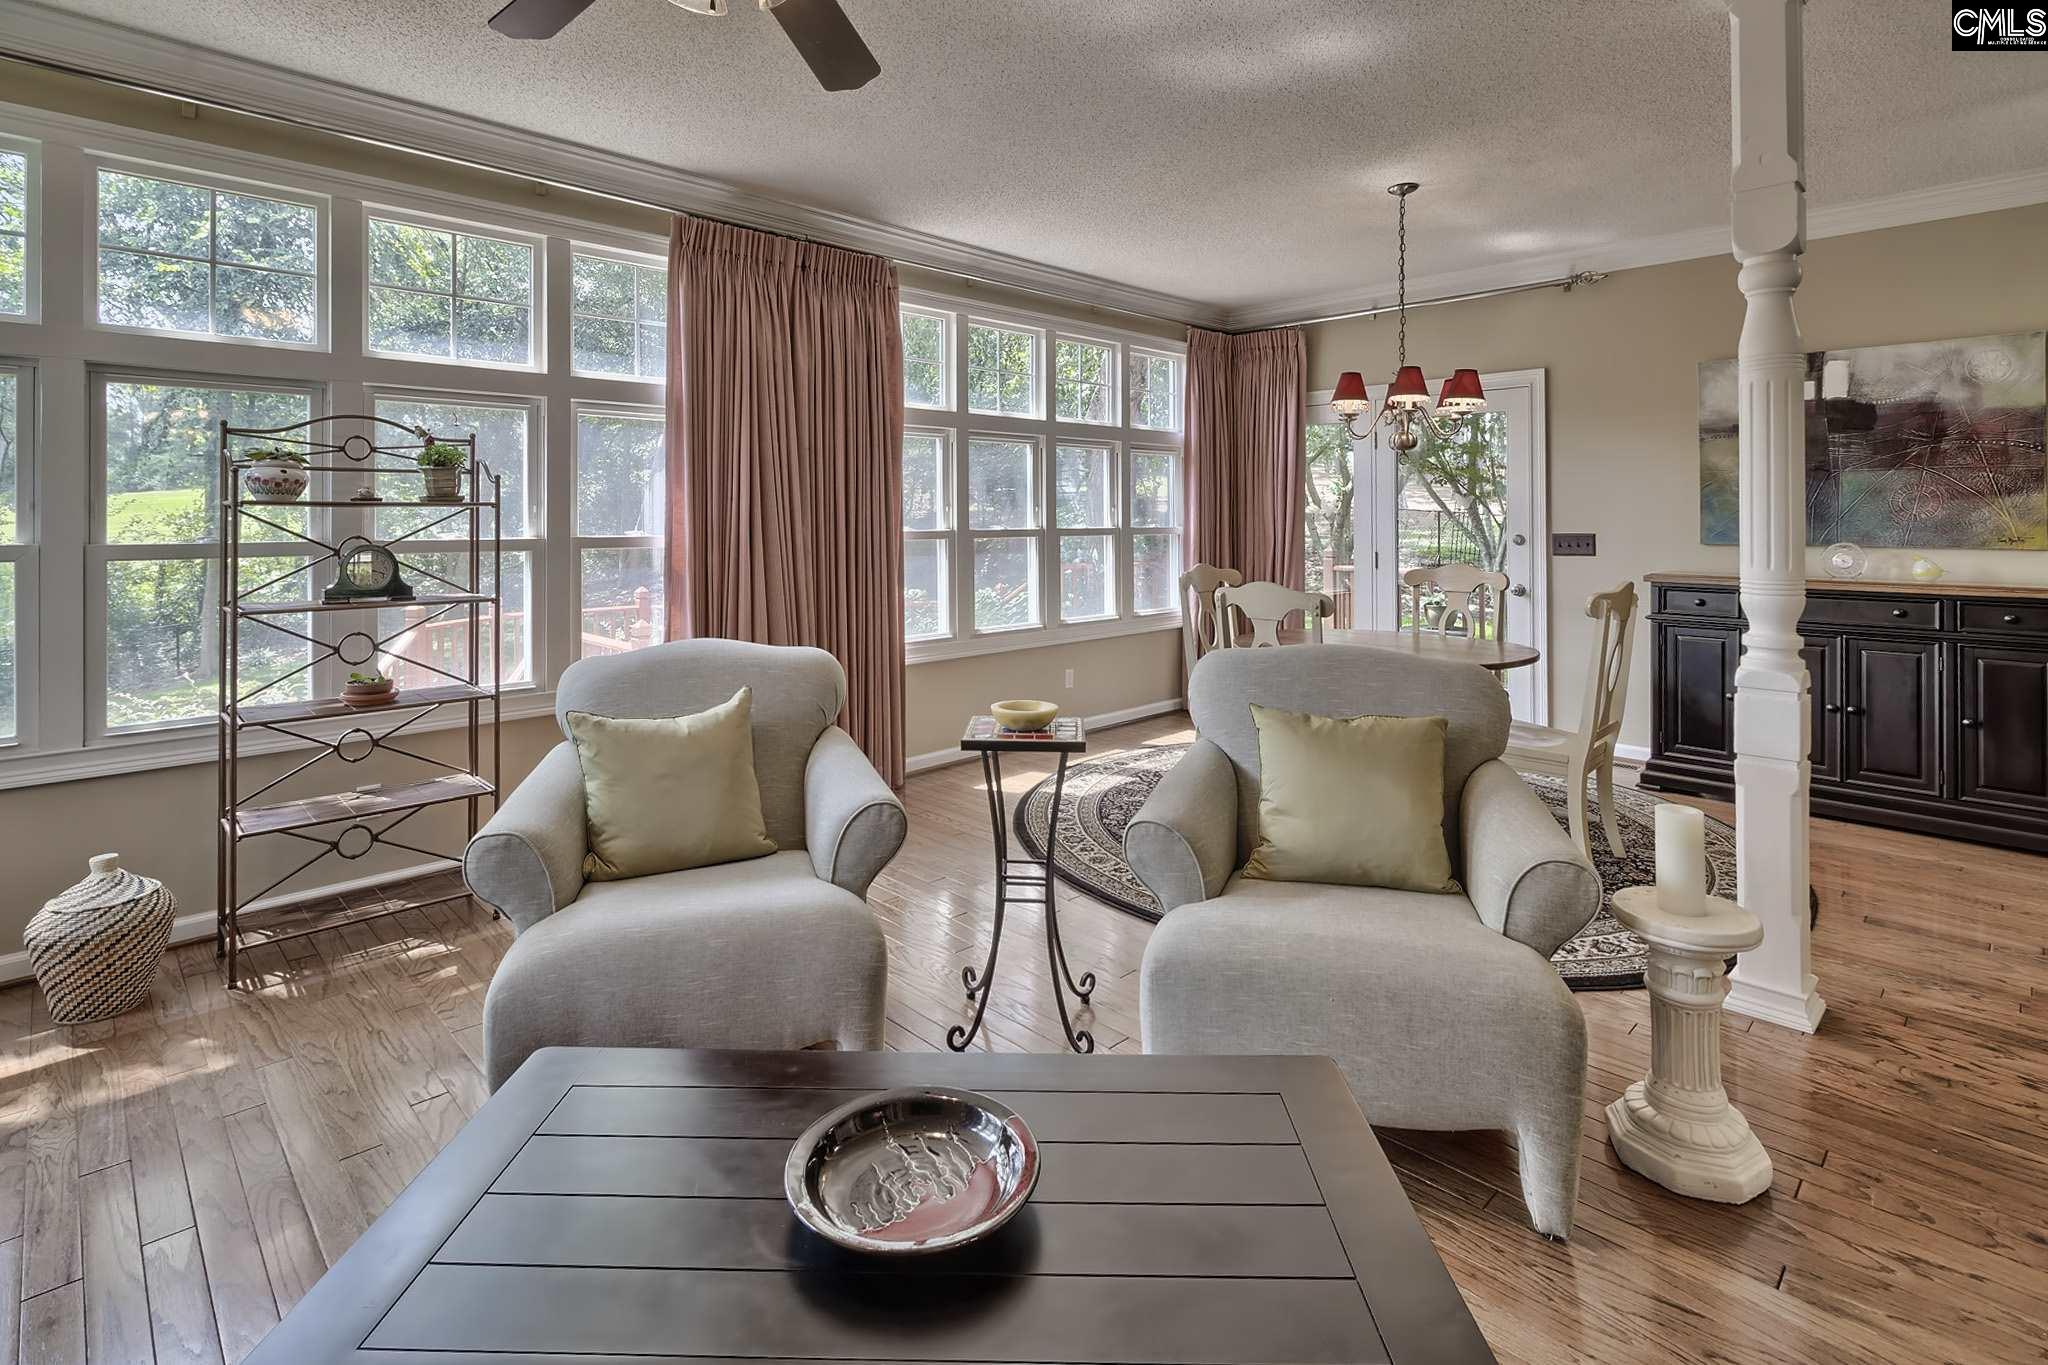 Living Room Sets Columbia Sc 221 Woodlands West South Carolina For 239 900 With Mls